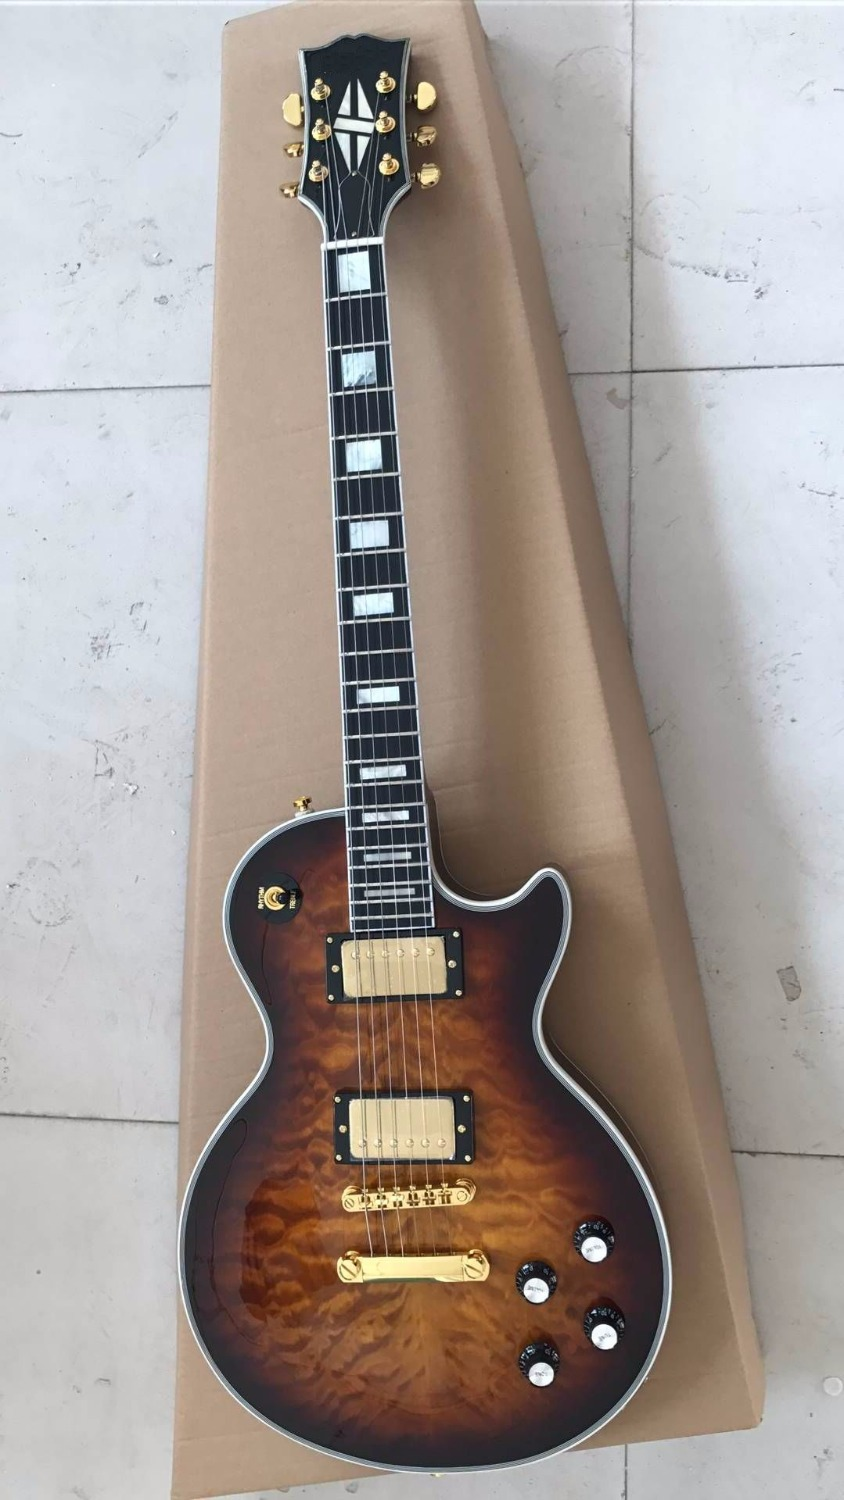 Wholesale Cheap Guitar Gbs LP Custom Electric Guitar Ebony Fingerboard/Fretside Binding In Brown Burst 170302 brown burst tiger flame standard paul lp style guitar in stock lp electric guitar ems free shipping